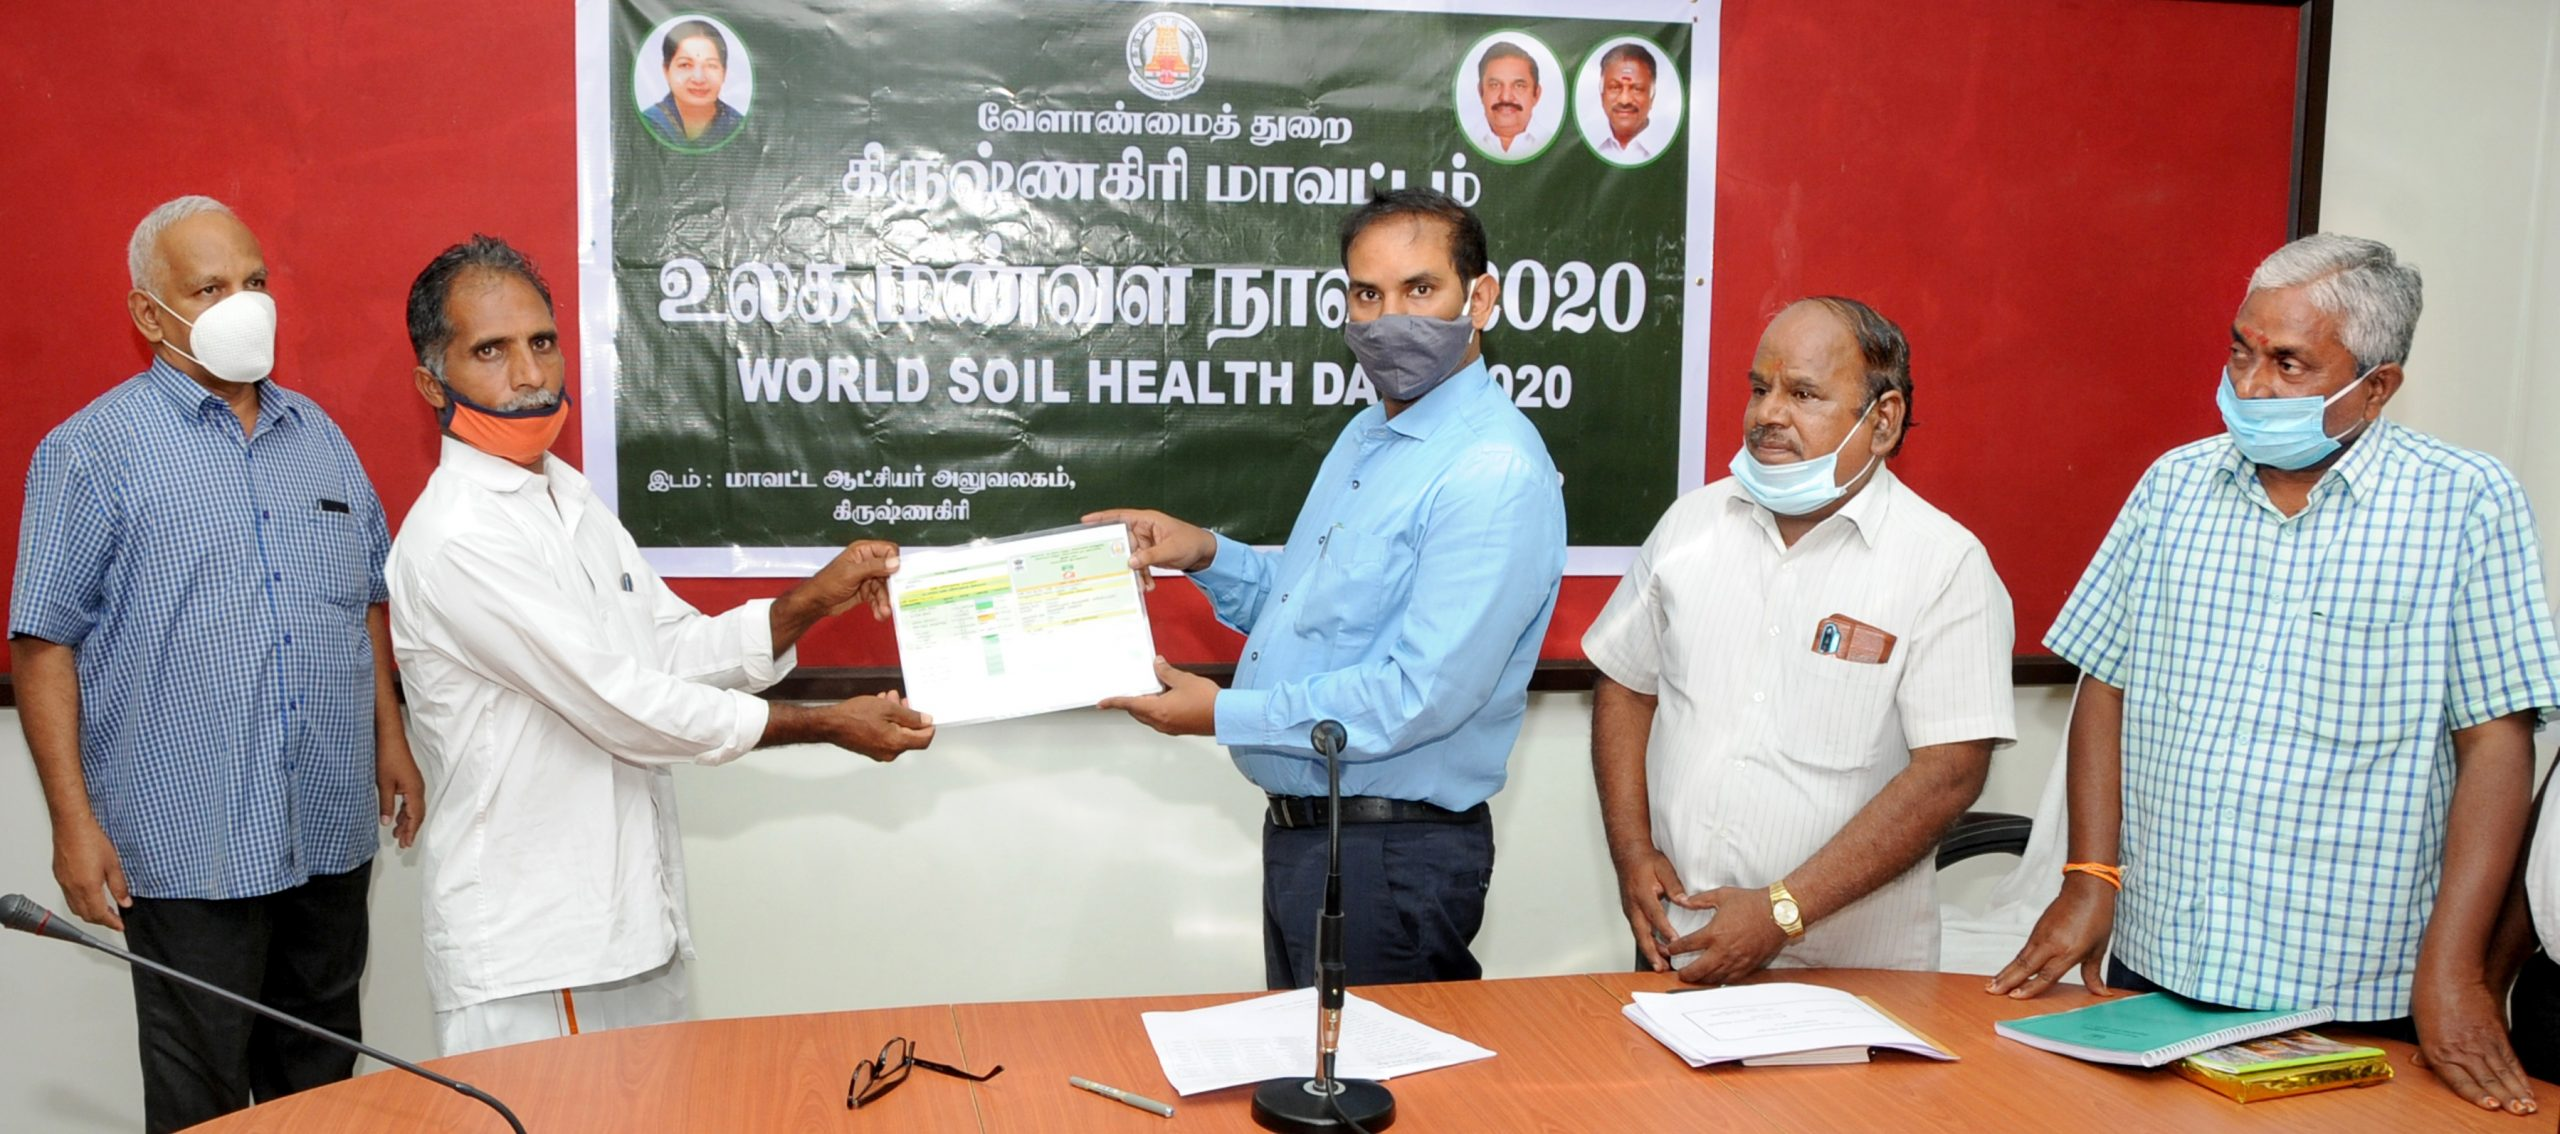 World soil health day